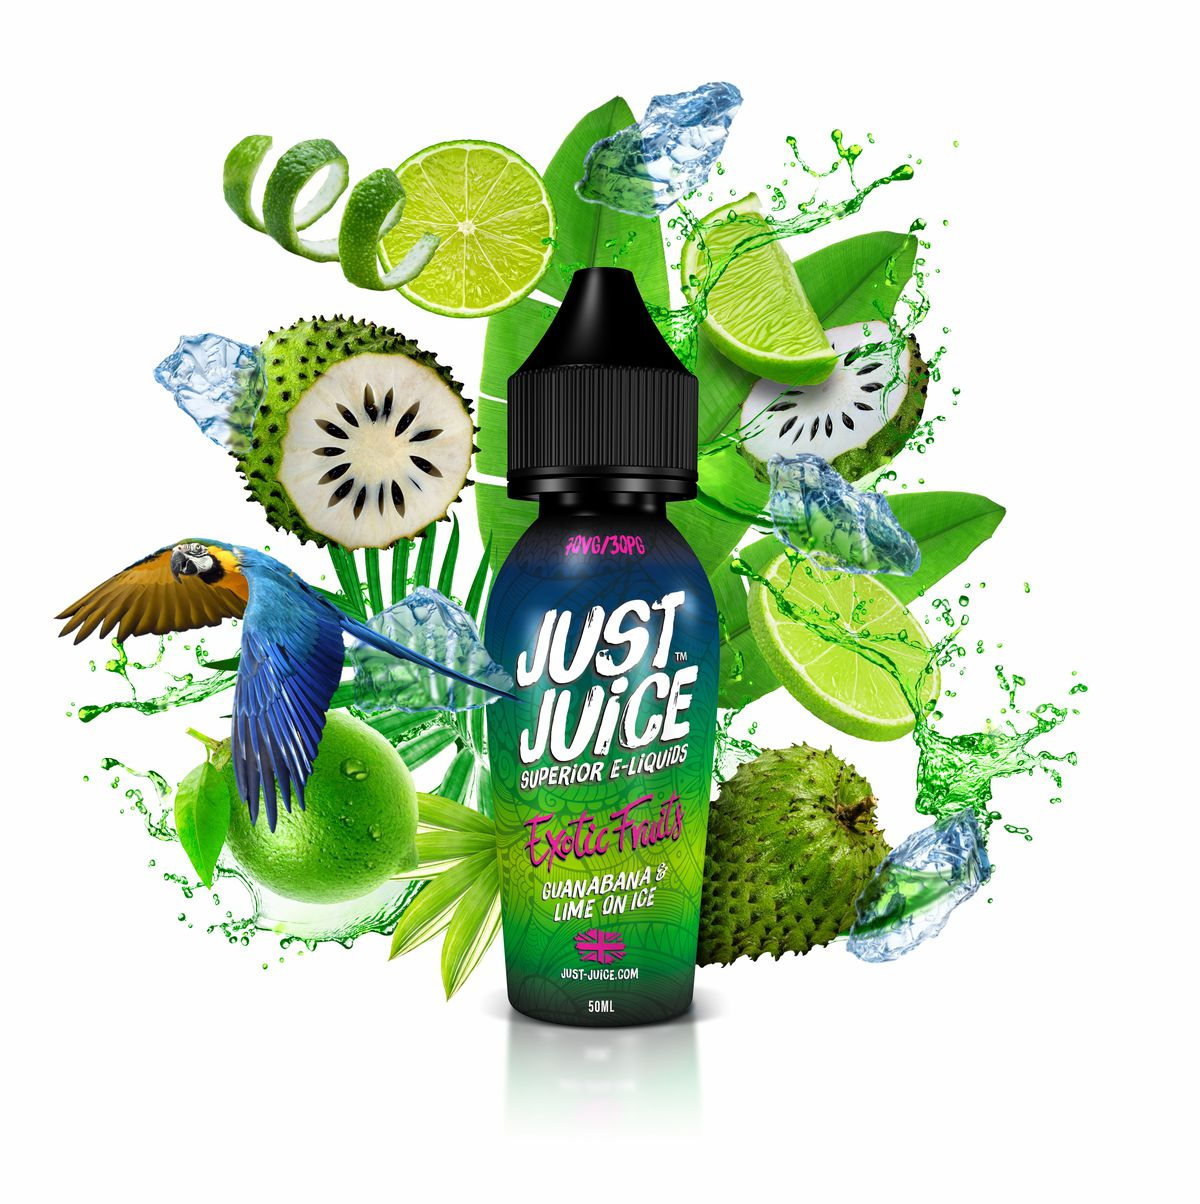 Guanabana Lime On Ice By Just Juice Exotic Range 50ml Shortfill